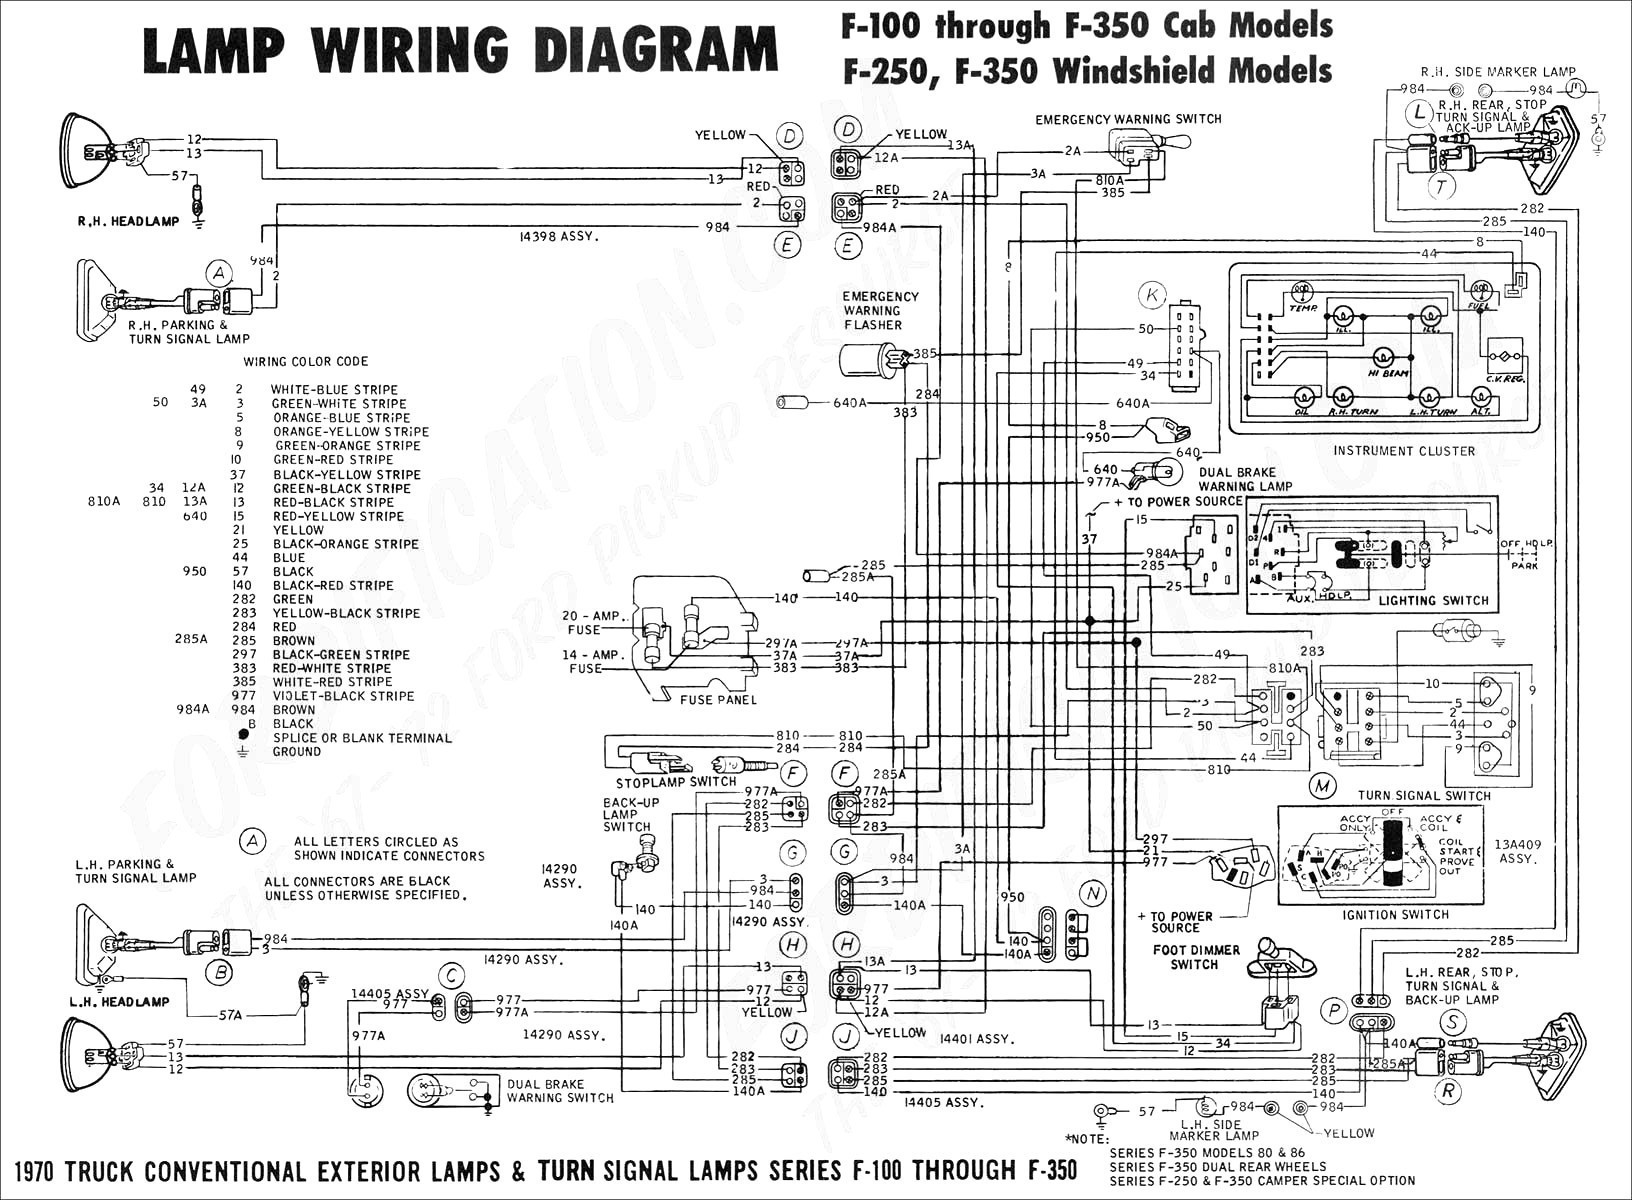 2015 Ford F650 Wiring Diagram - Wiring Diagram Replace free-check -  free-check.miramontiseo.it | 2015 Ford F650 Wiring Diagram |  | free-check.miramontiseo.it